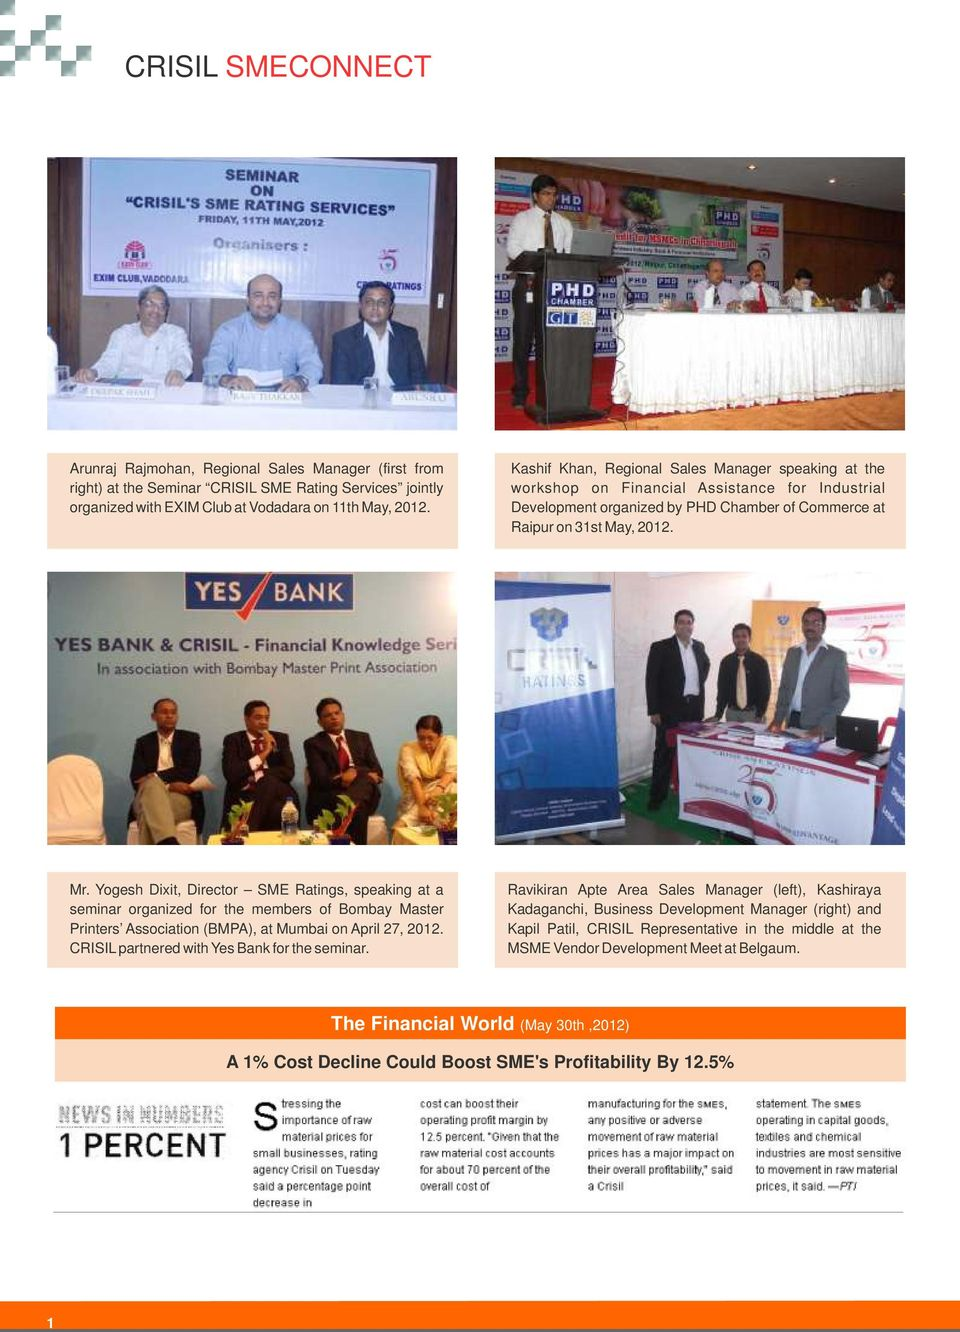 Yogesh Dixit, Director SME s, speaking at a seminar organized for the members of Bombay Master Printers Association (BMPA), at Mumbai on April 27, 2012. CRISIL partnered with Yes Bank for the seminar.